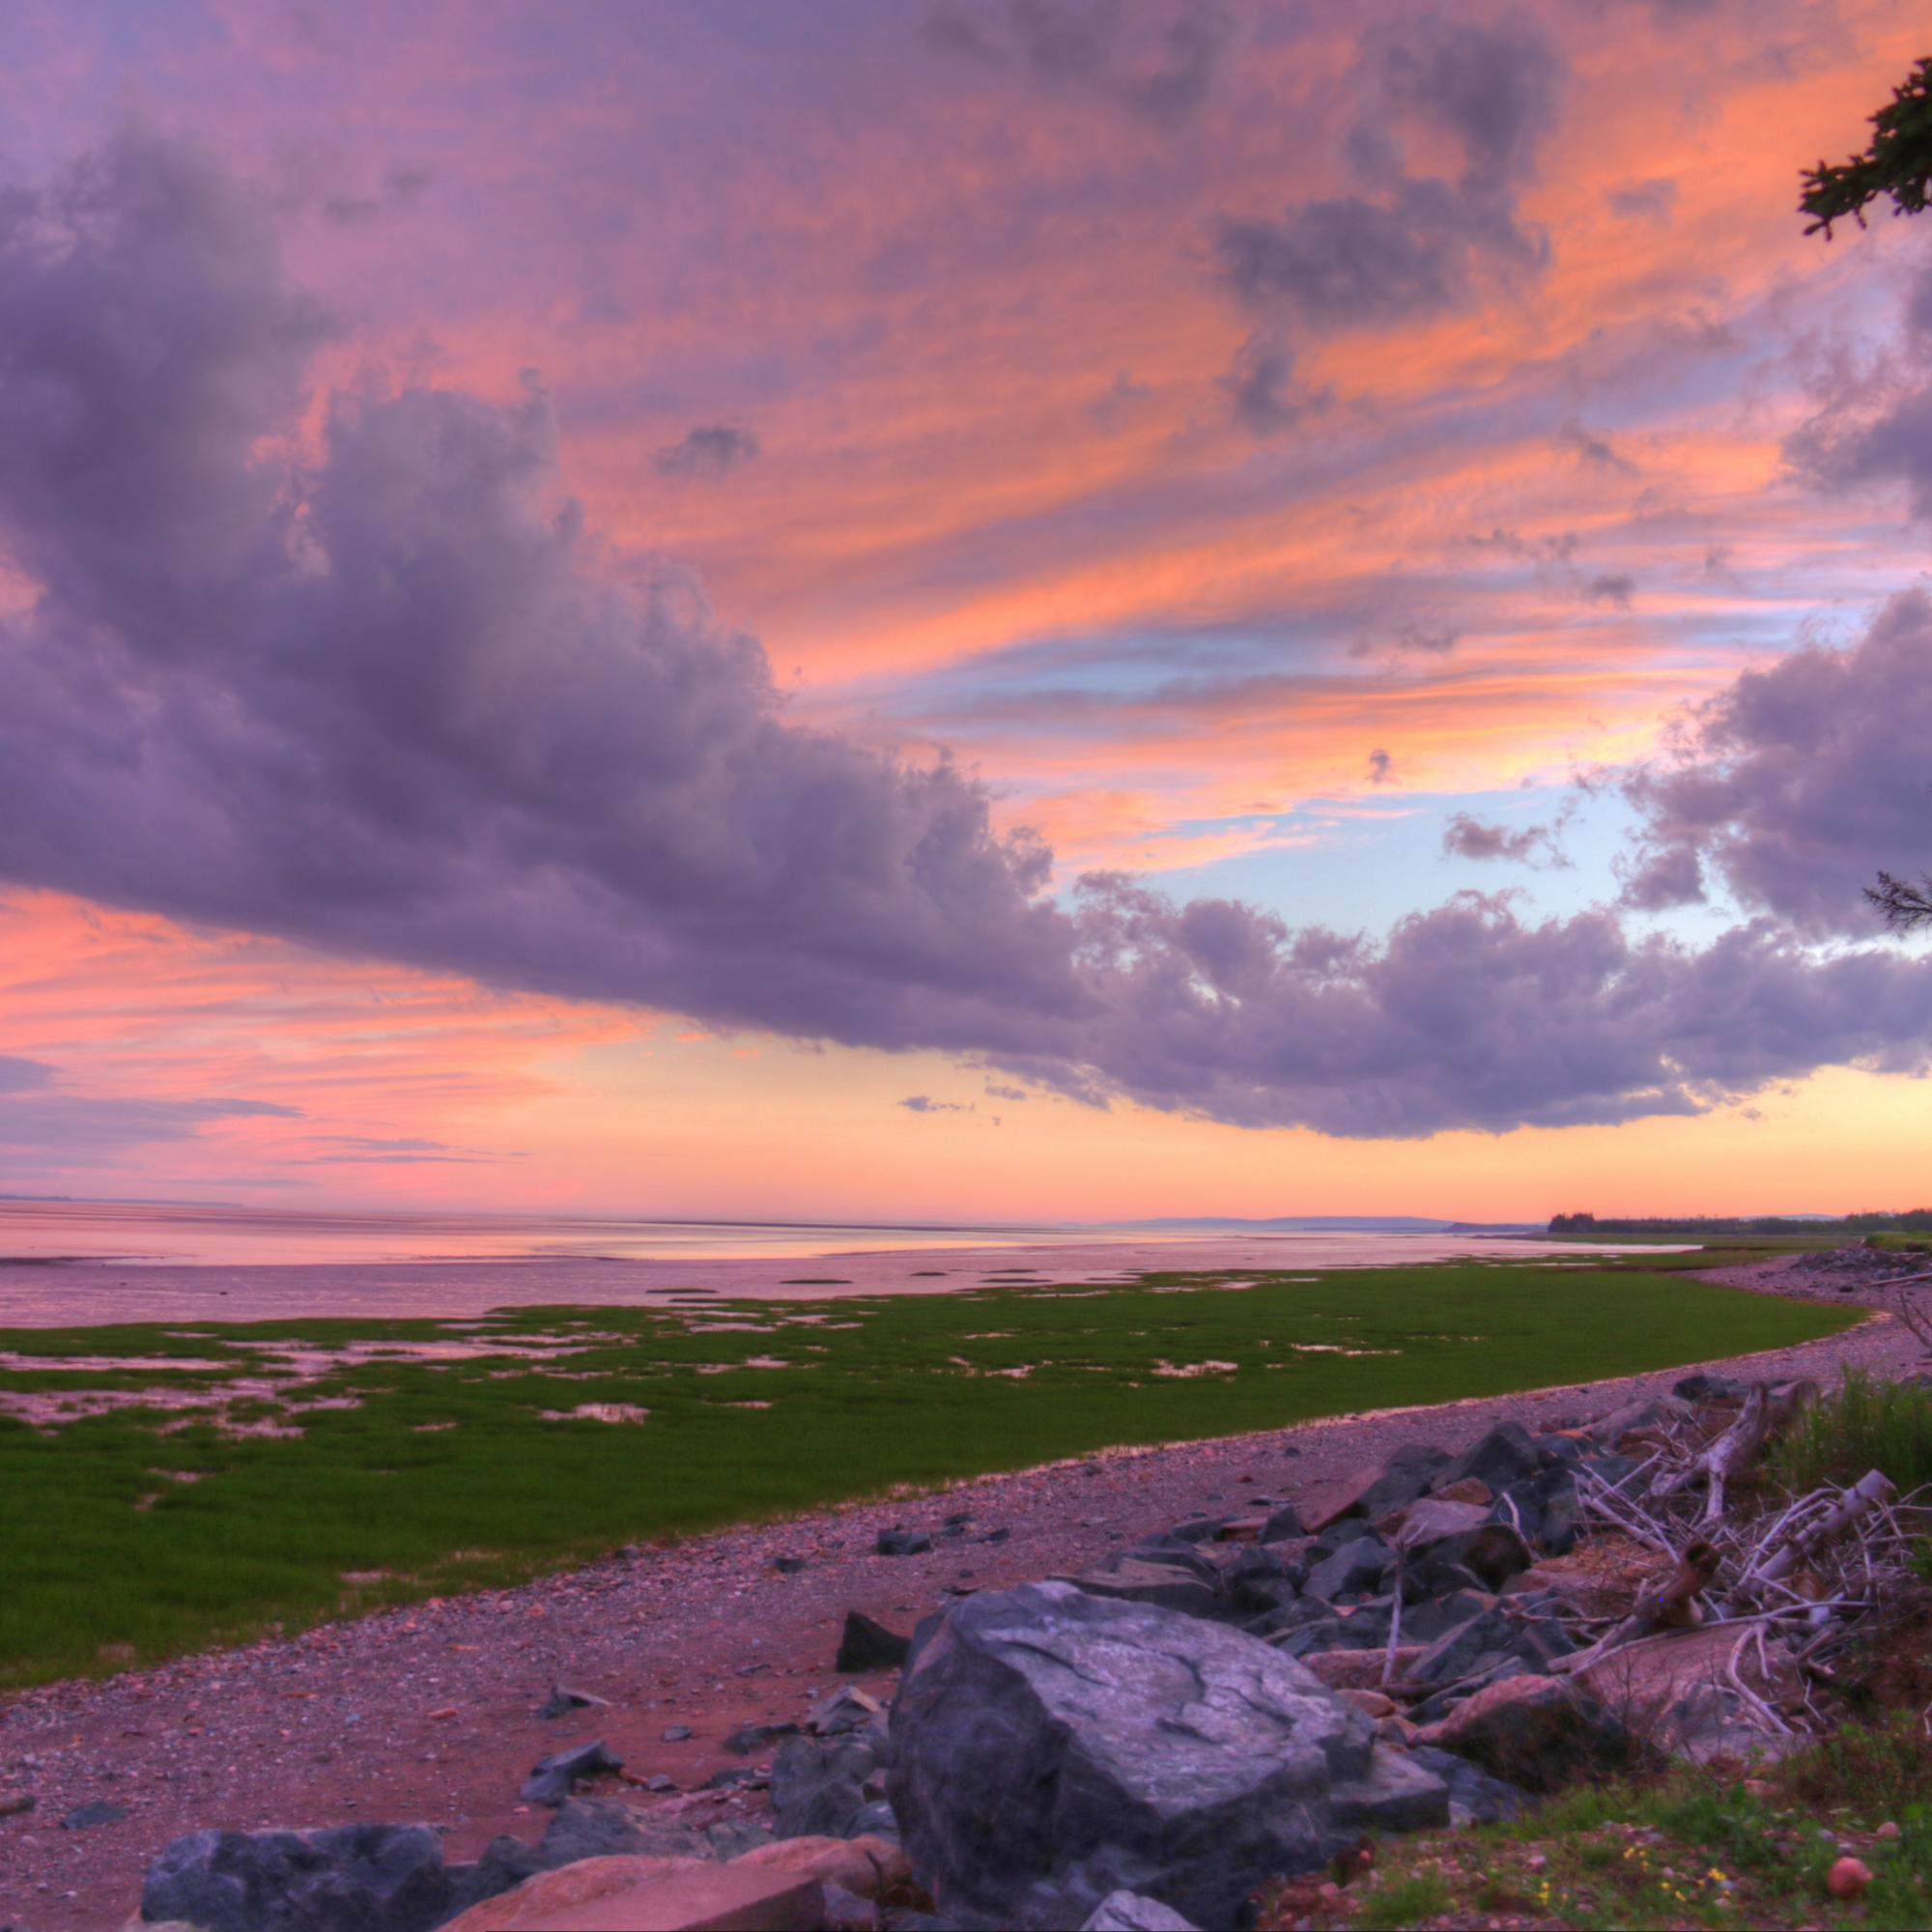 Sunset on the Bay of Fundy